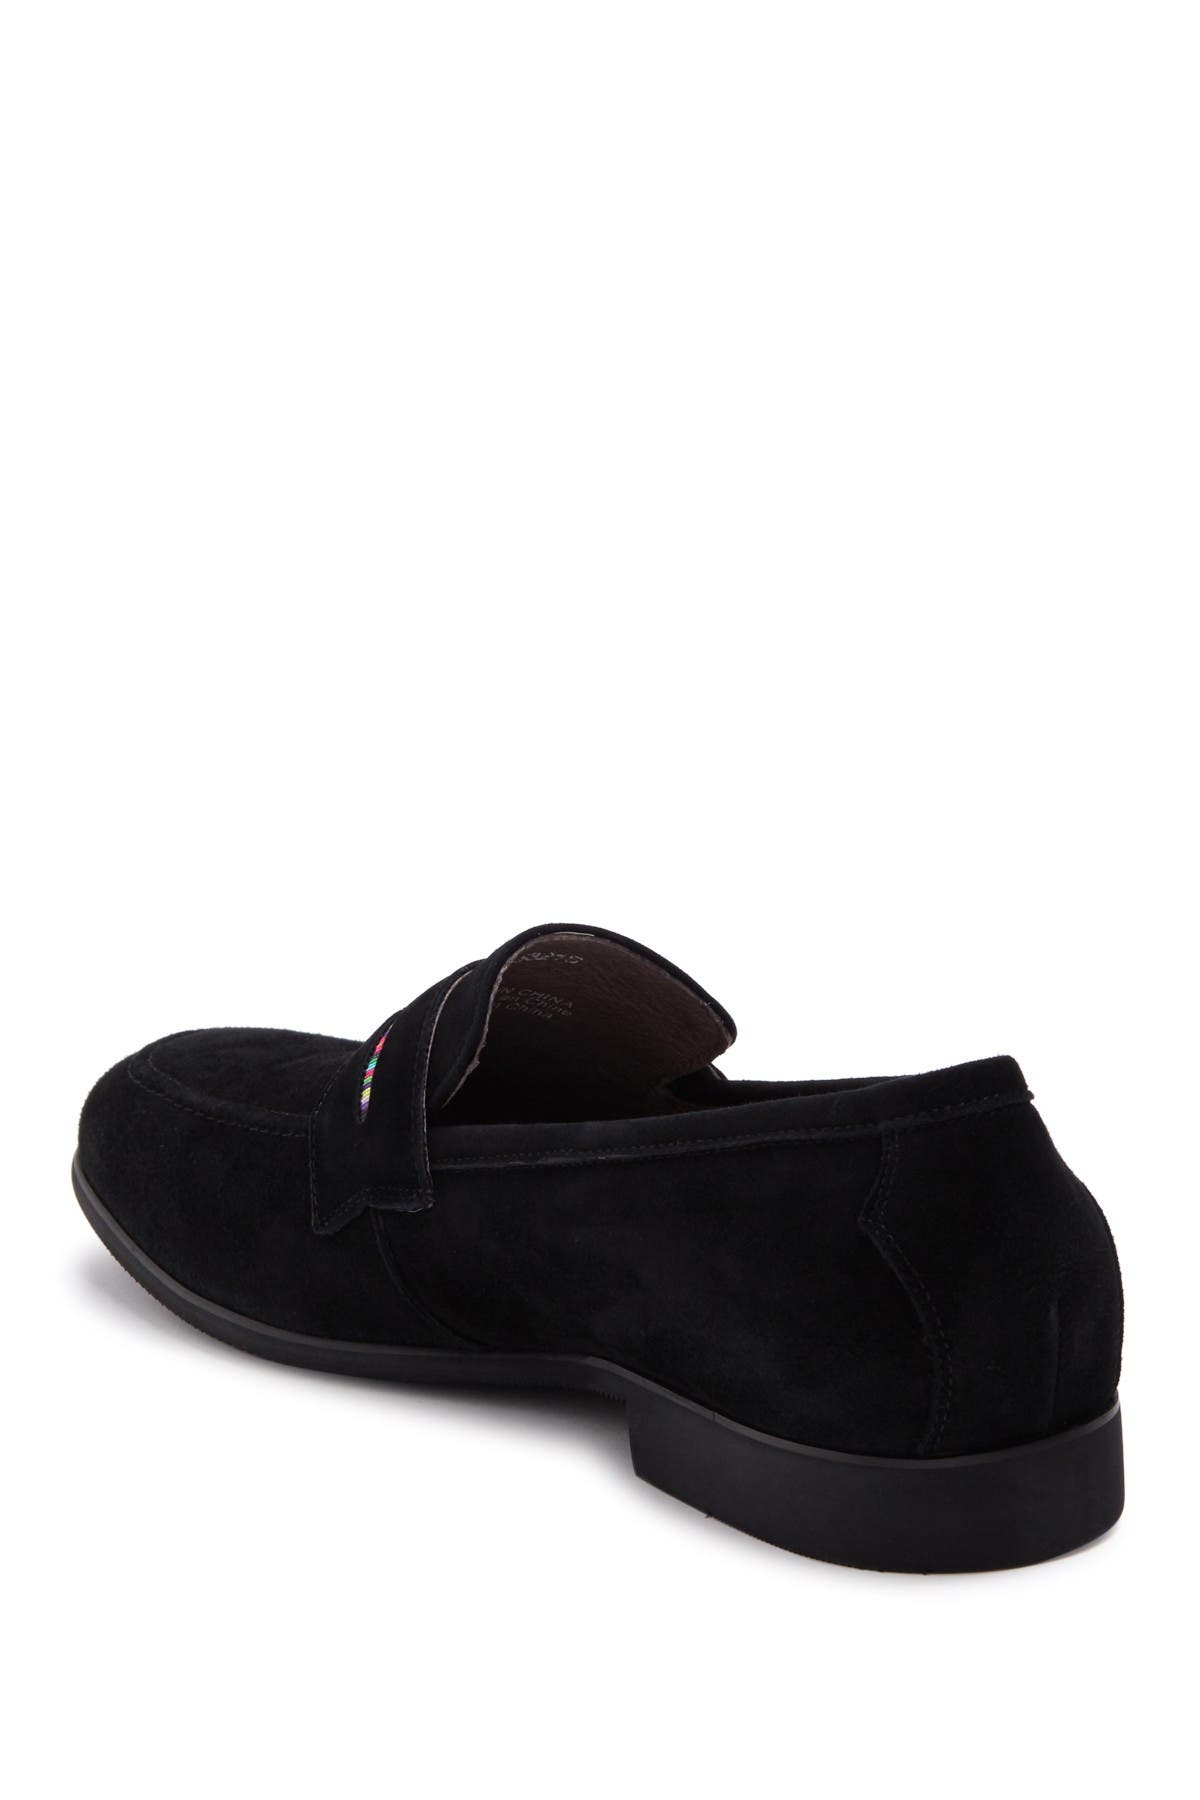 Image of Robert Graham Mitchum Leather Penny Loafer